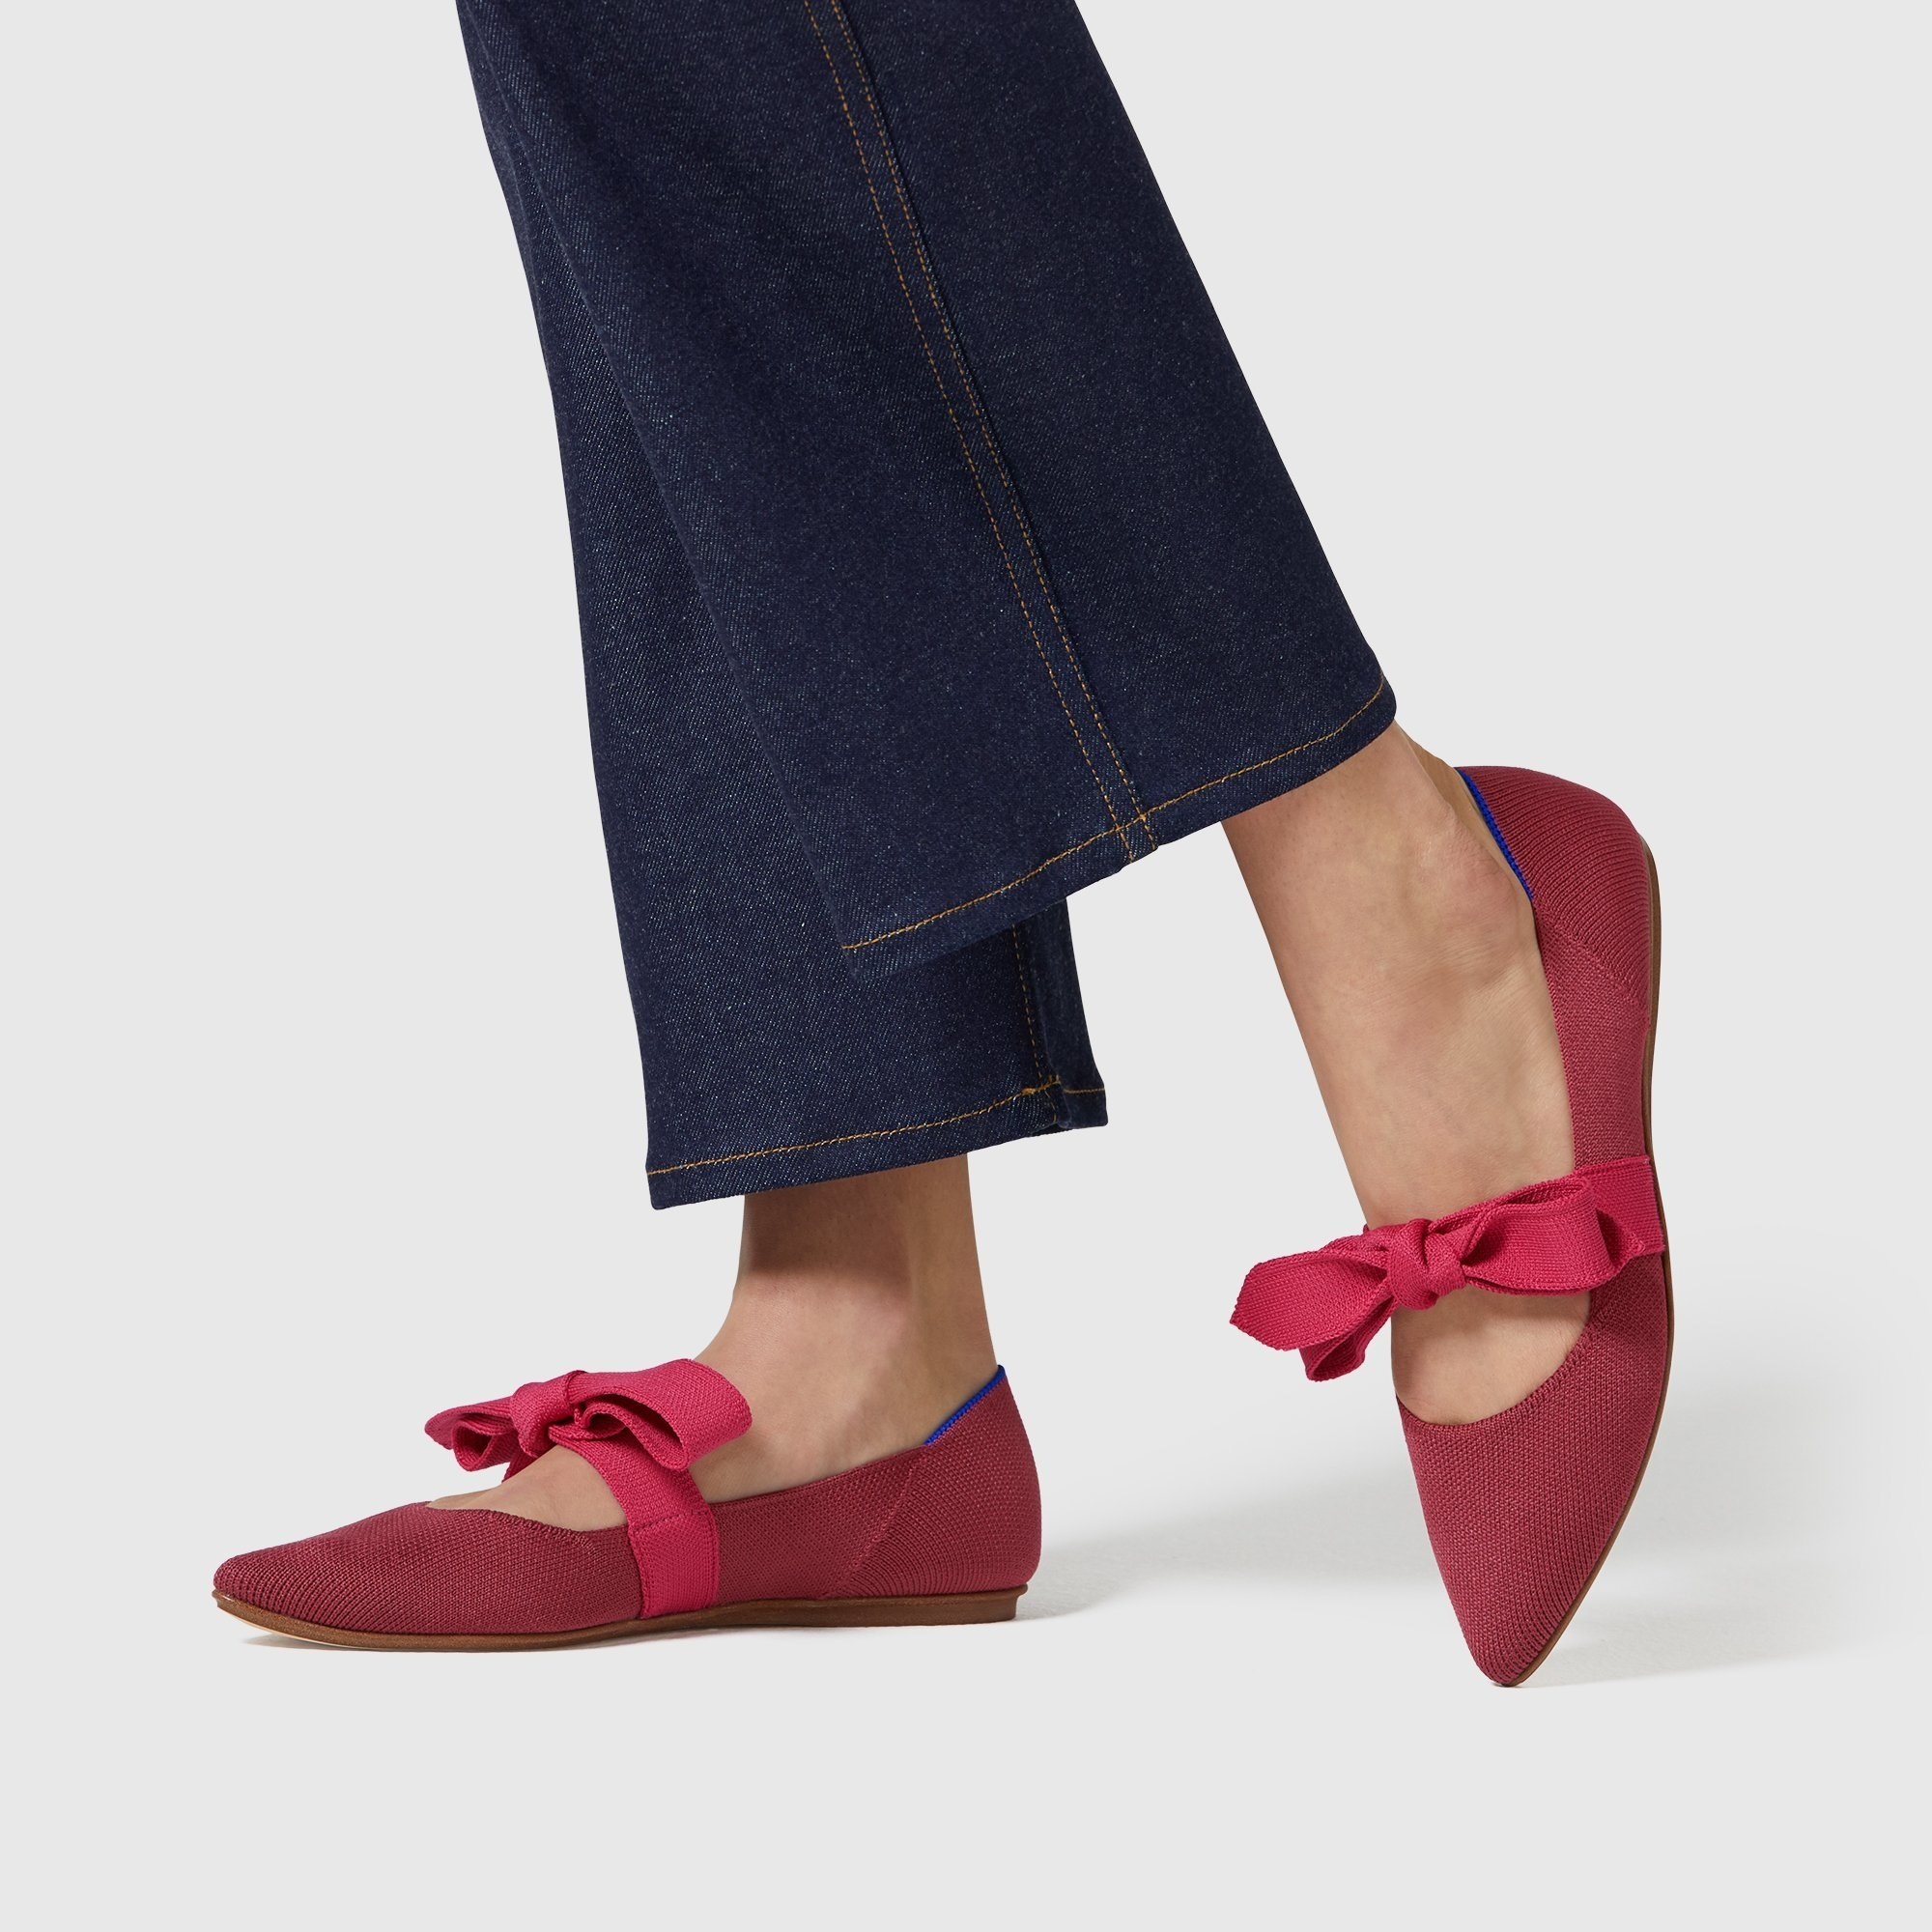 Model wearing the pointed-toe flats in red with a slightly lighter red boy tie across the top of the feet.